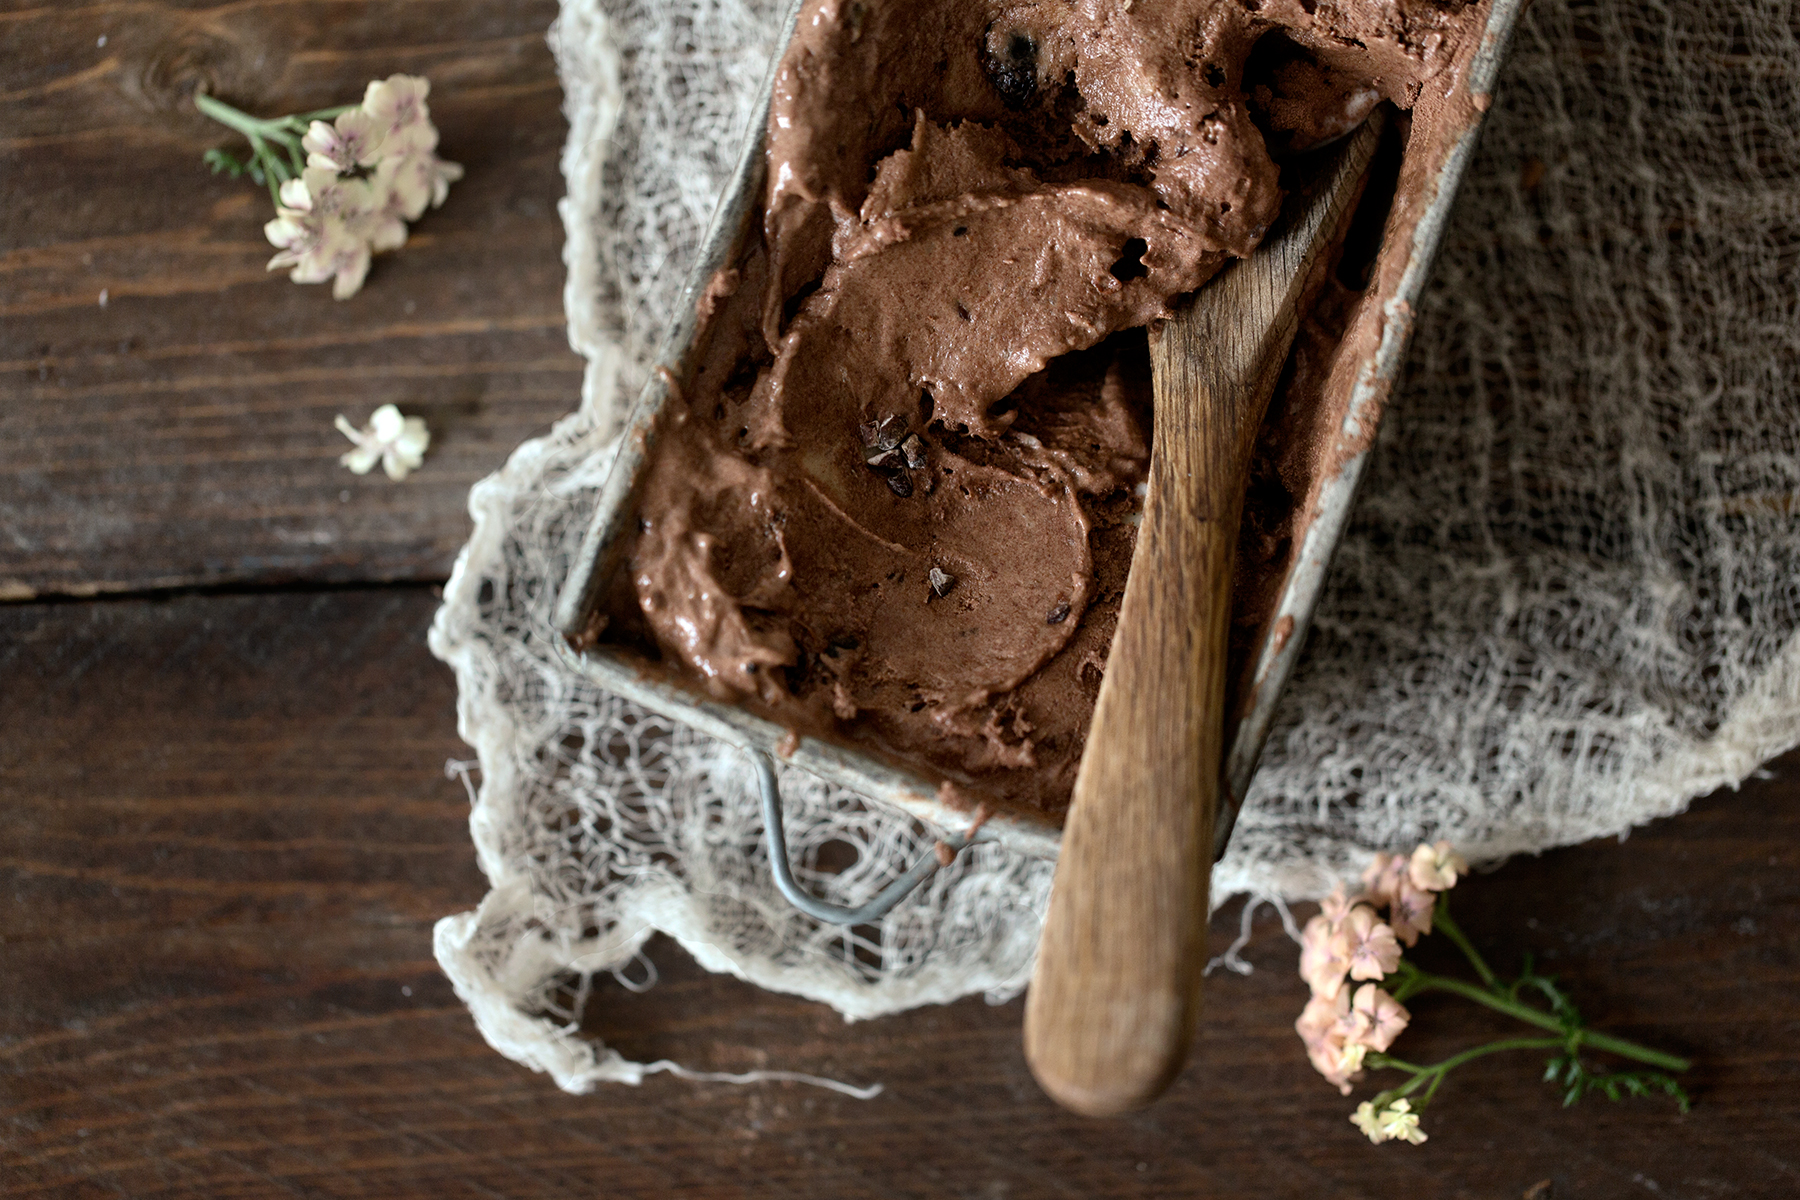 Rom Raisin Chocolate Ice Cream